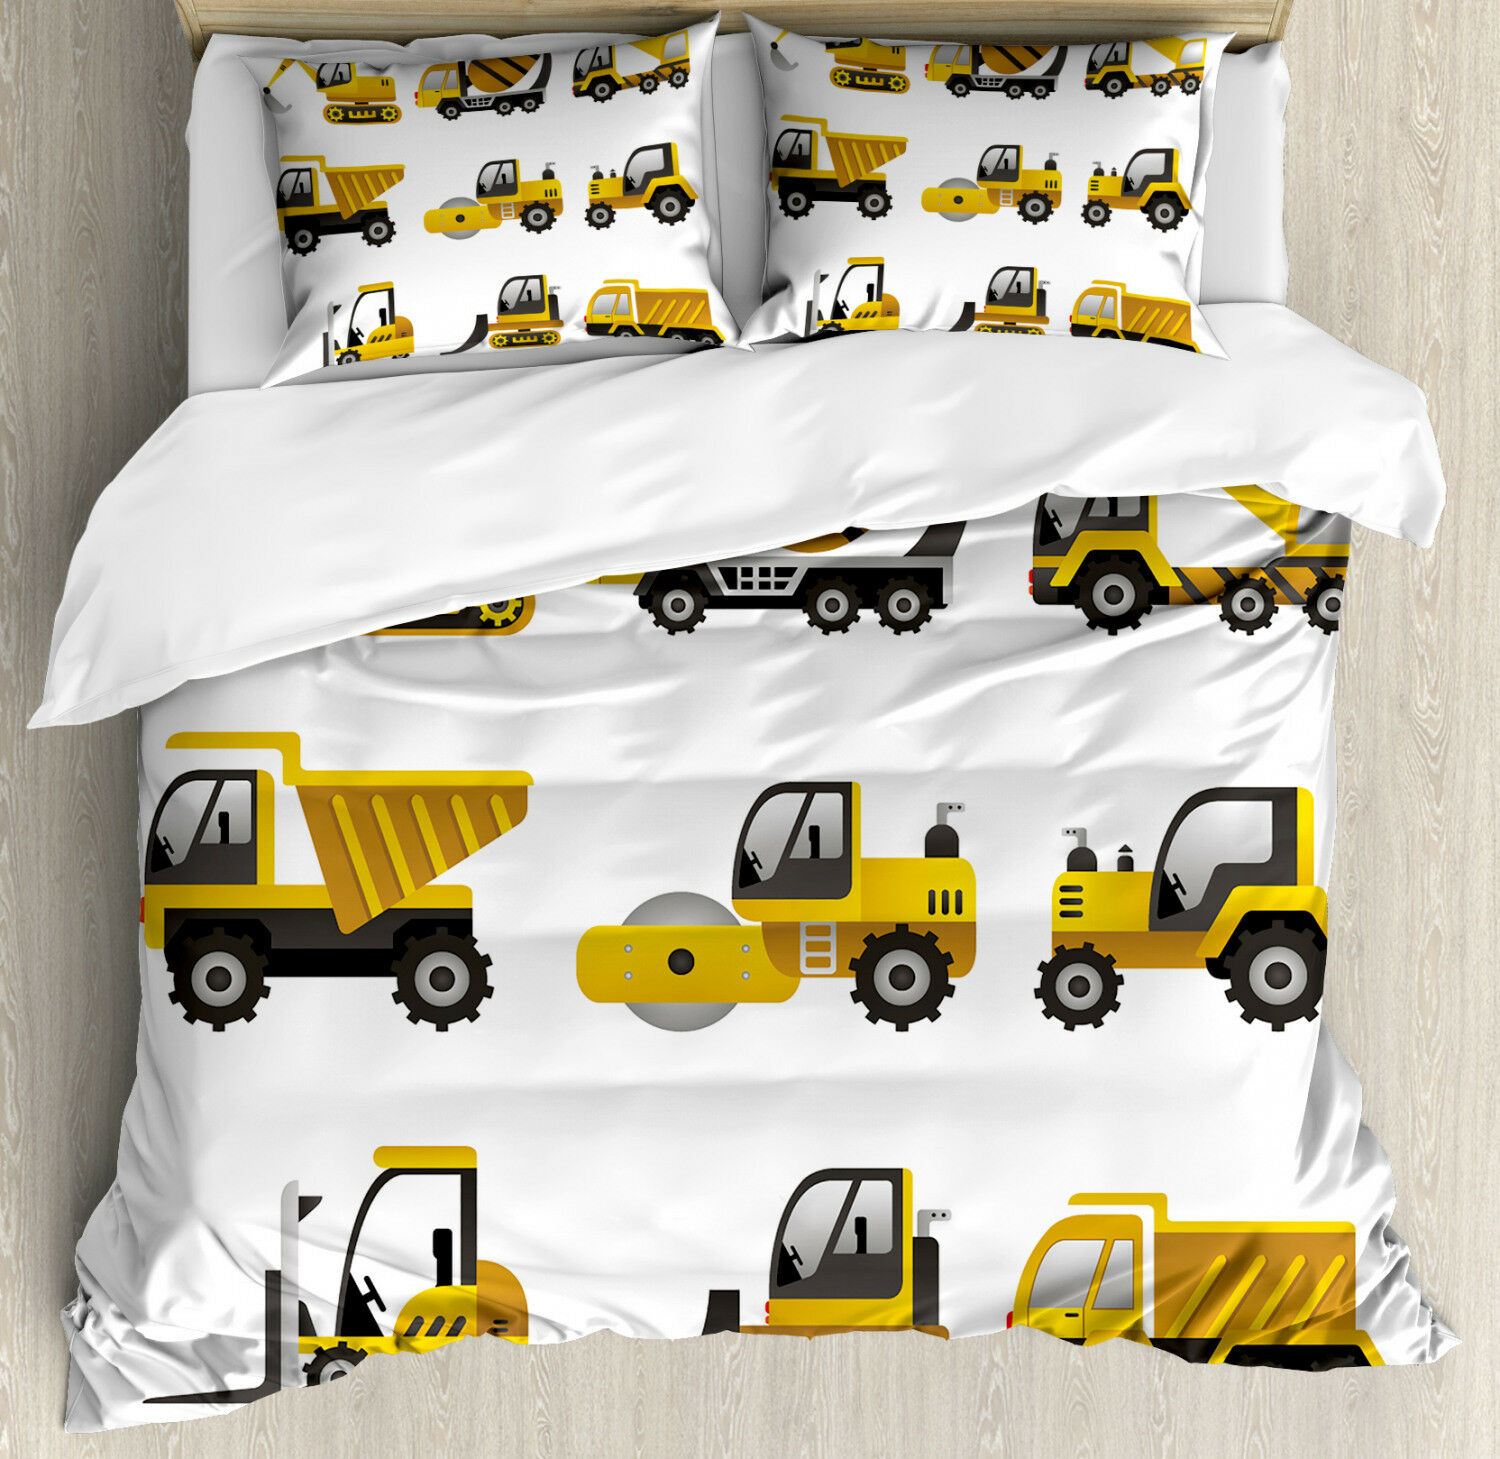 Construction Duvet Cover Set with Pillow Shams Vehicles Clip Art Print